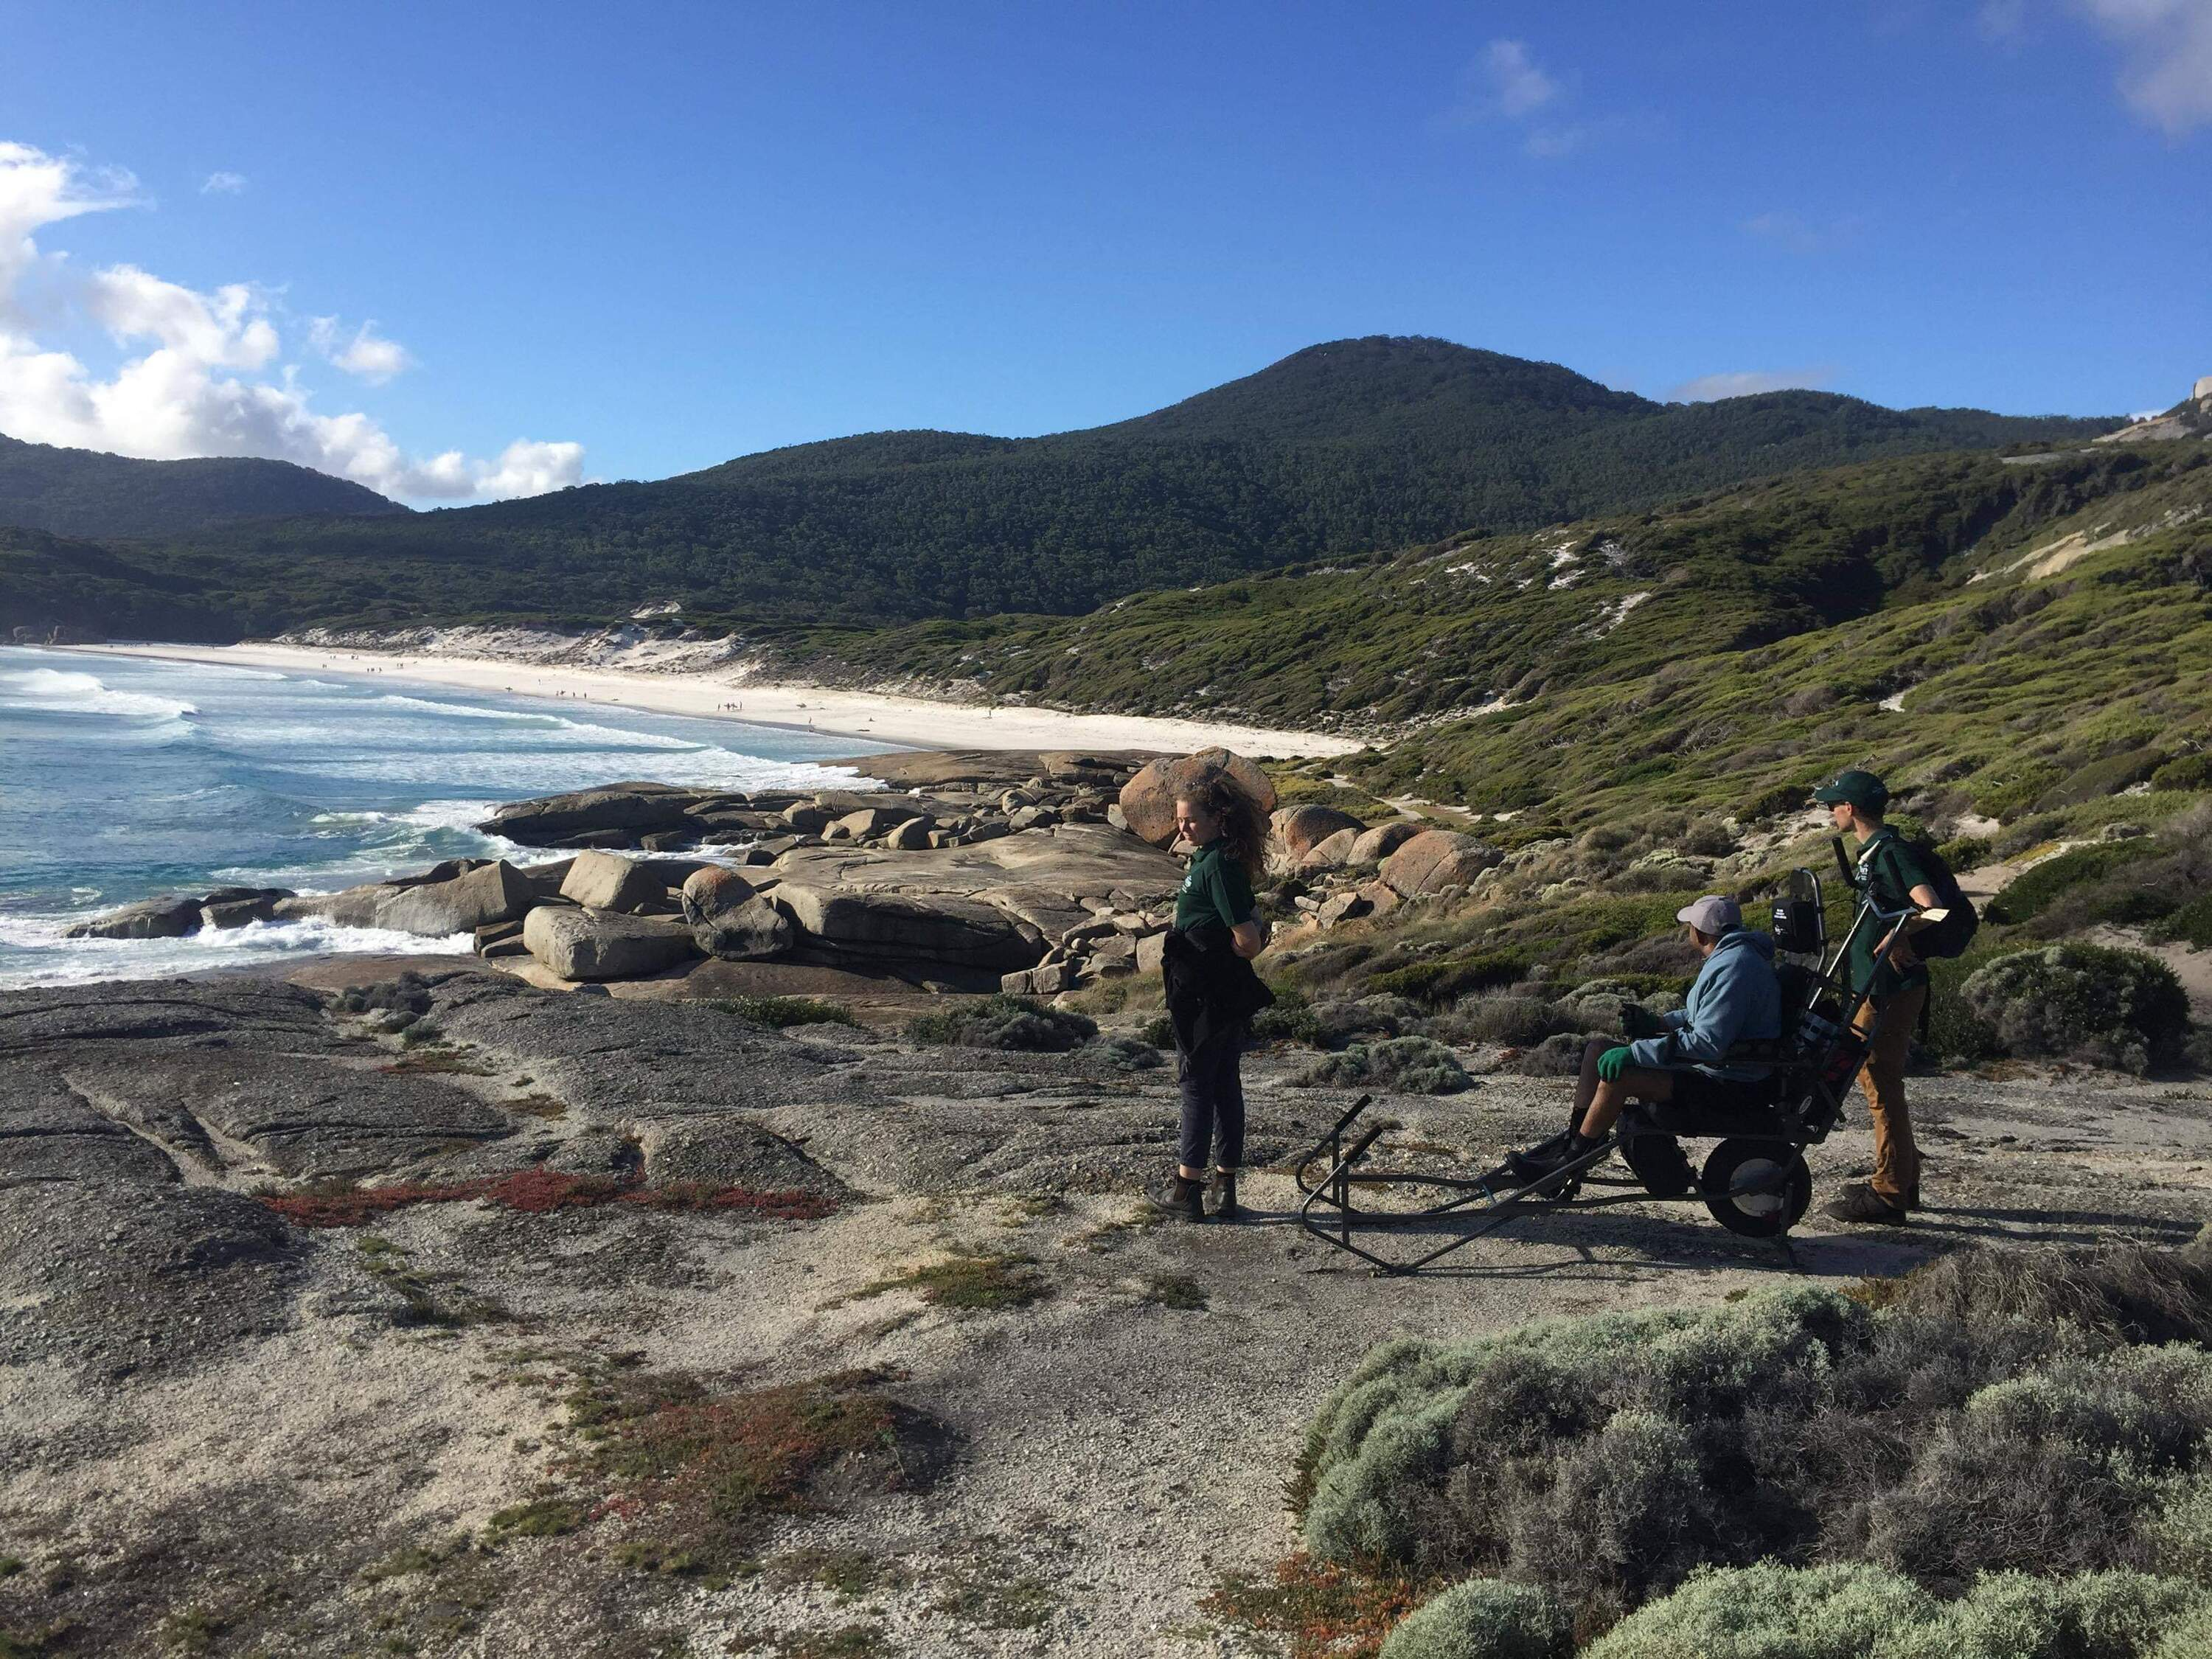 Wheelchair user near beach at Wilsons Promontory